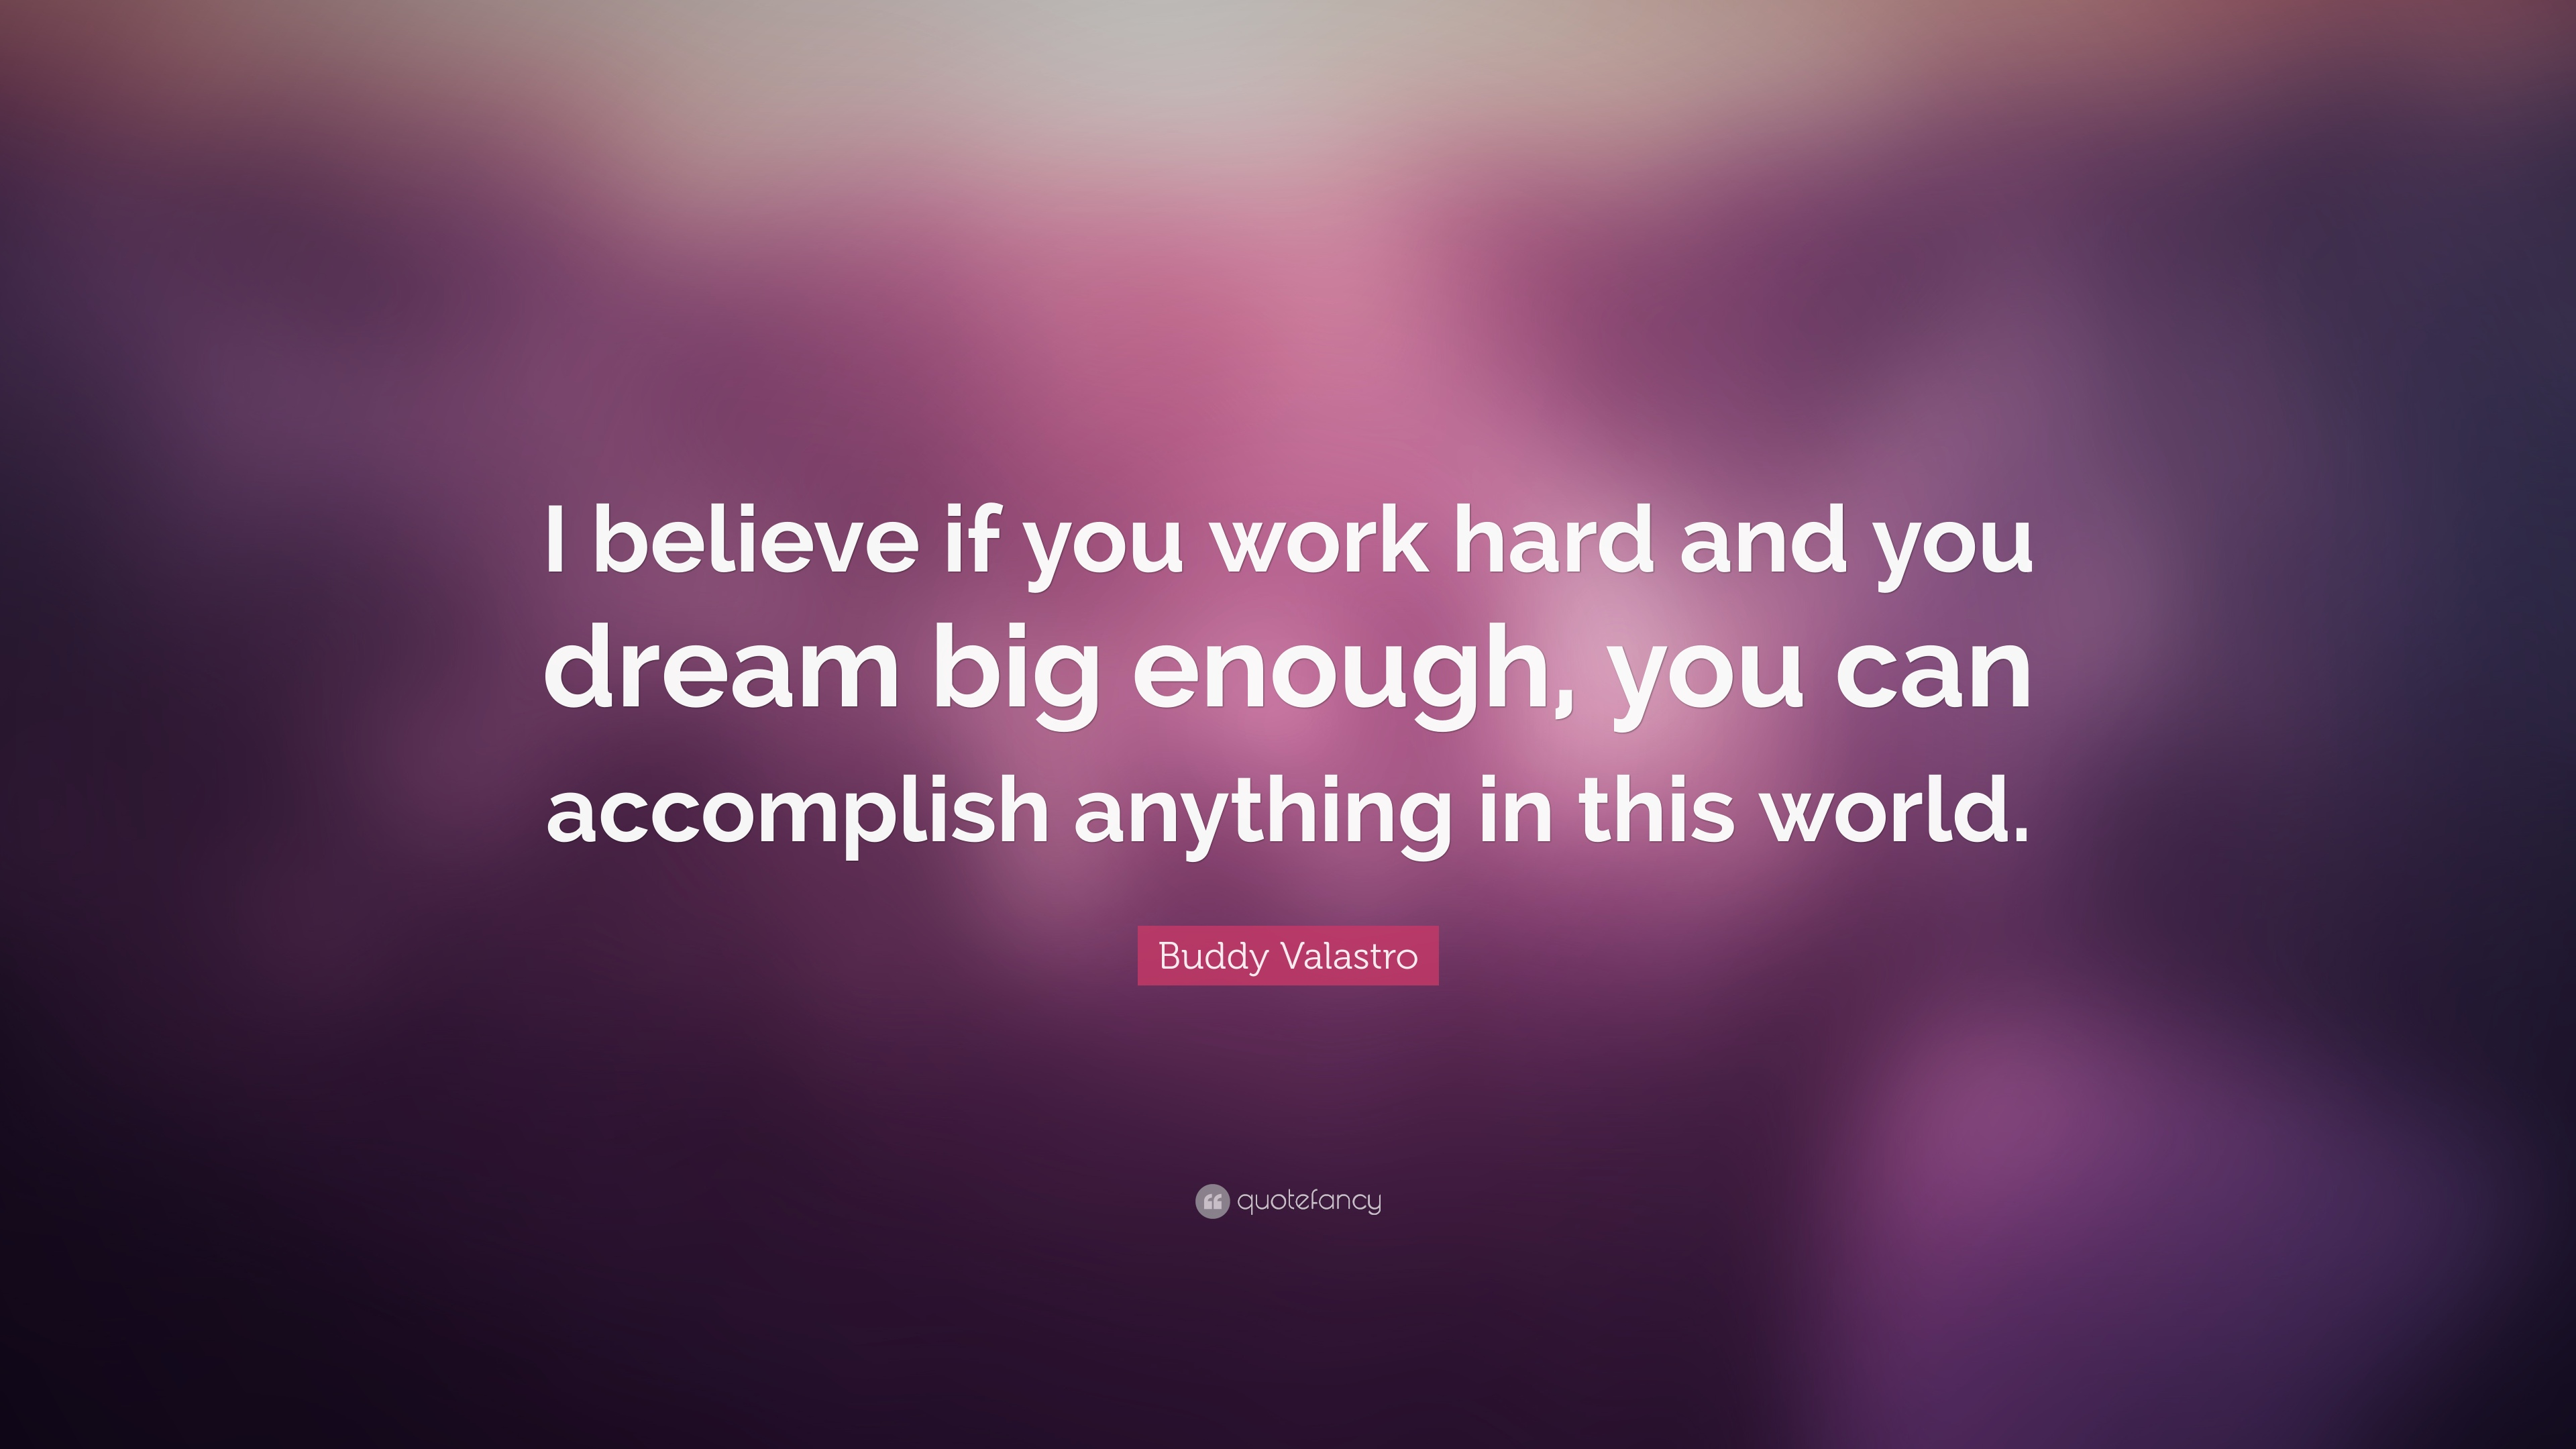 Dream Big Quotes Wallpaper Buddy Valastro Quote I Believe If You Work Hard And You